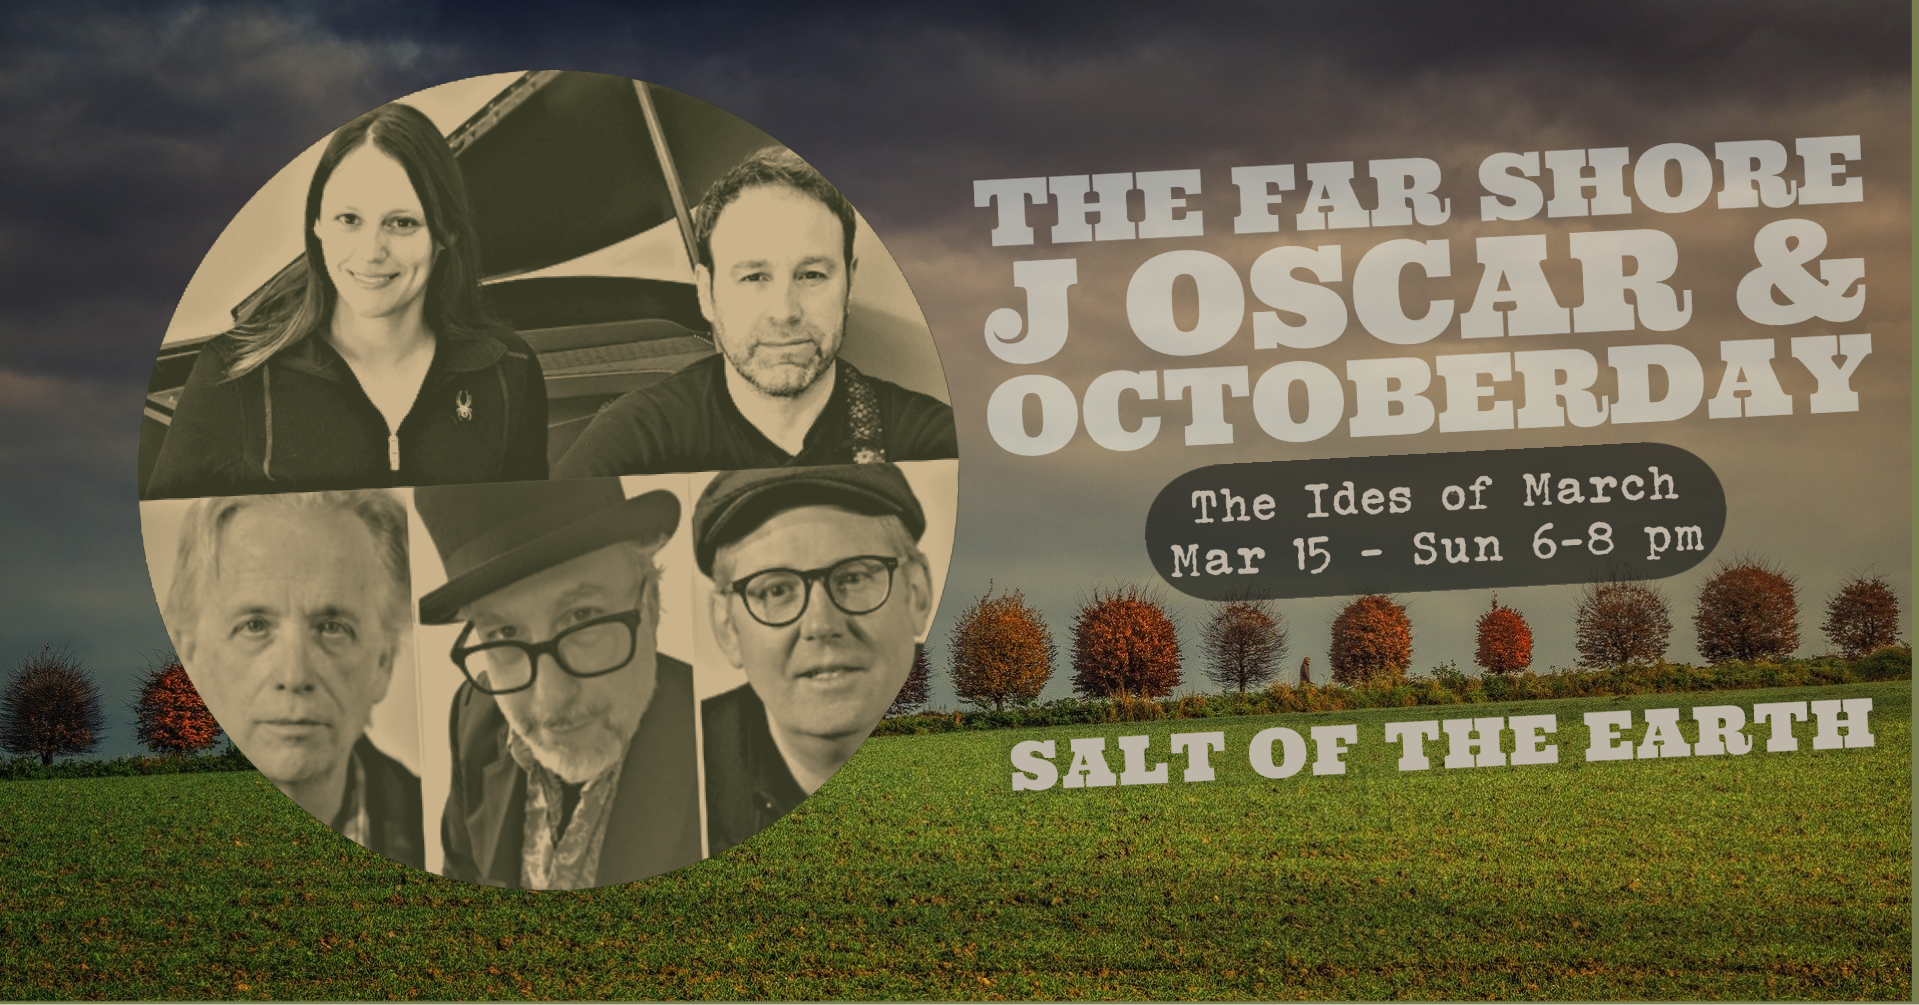 J Oscar & OctoberDay at Salt of the Earth September 27, 2020